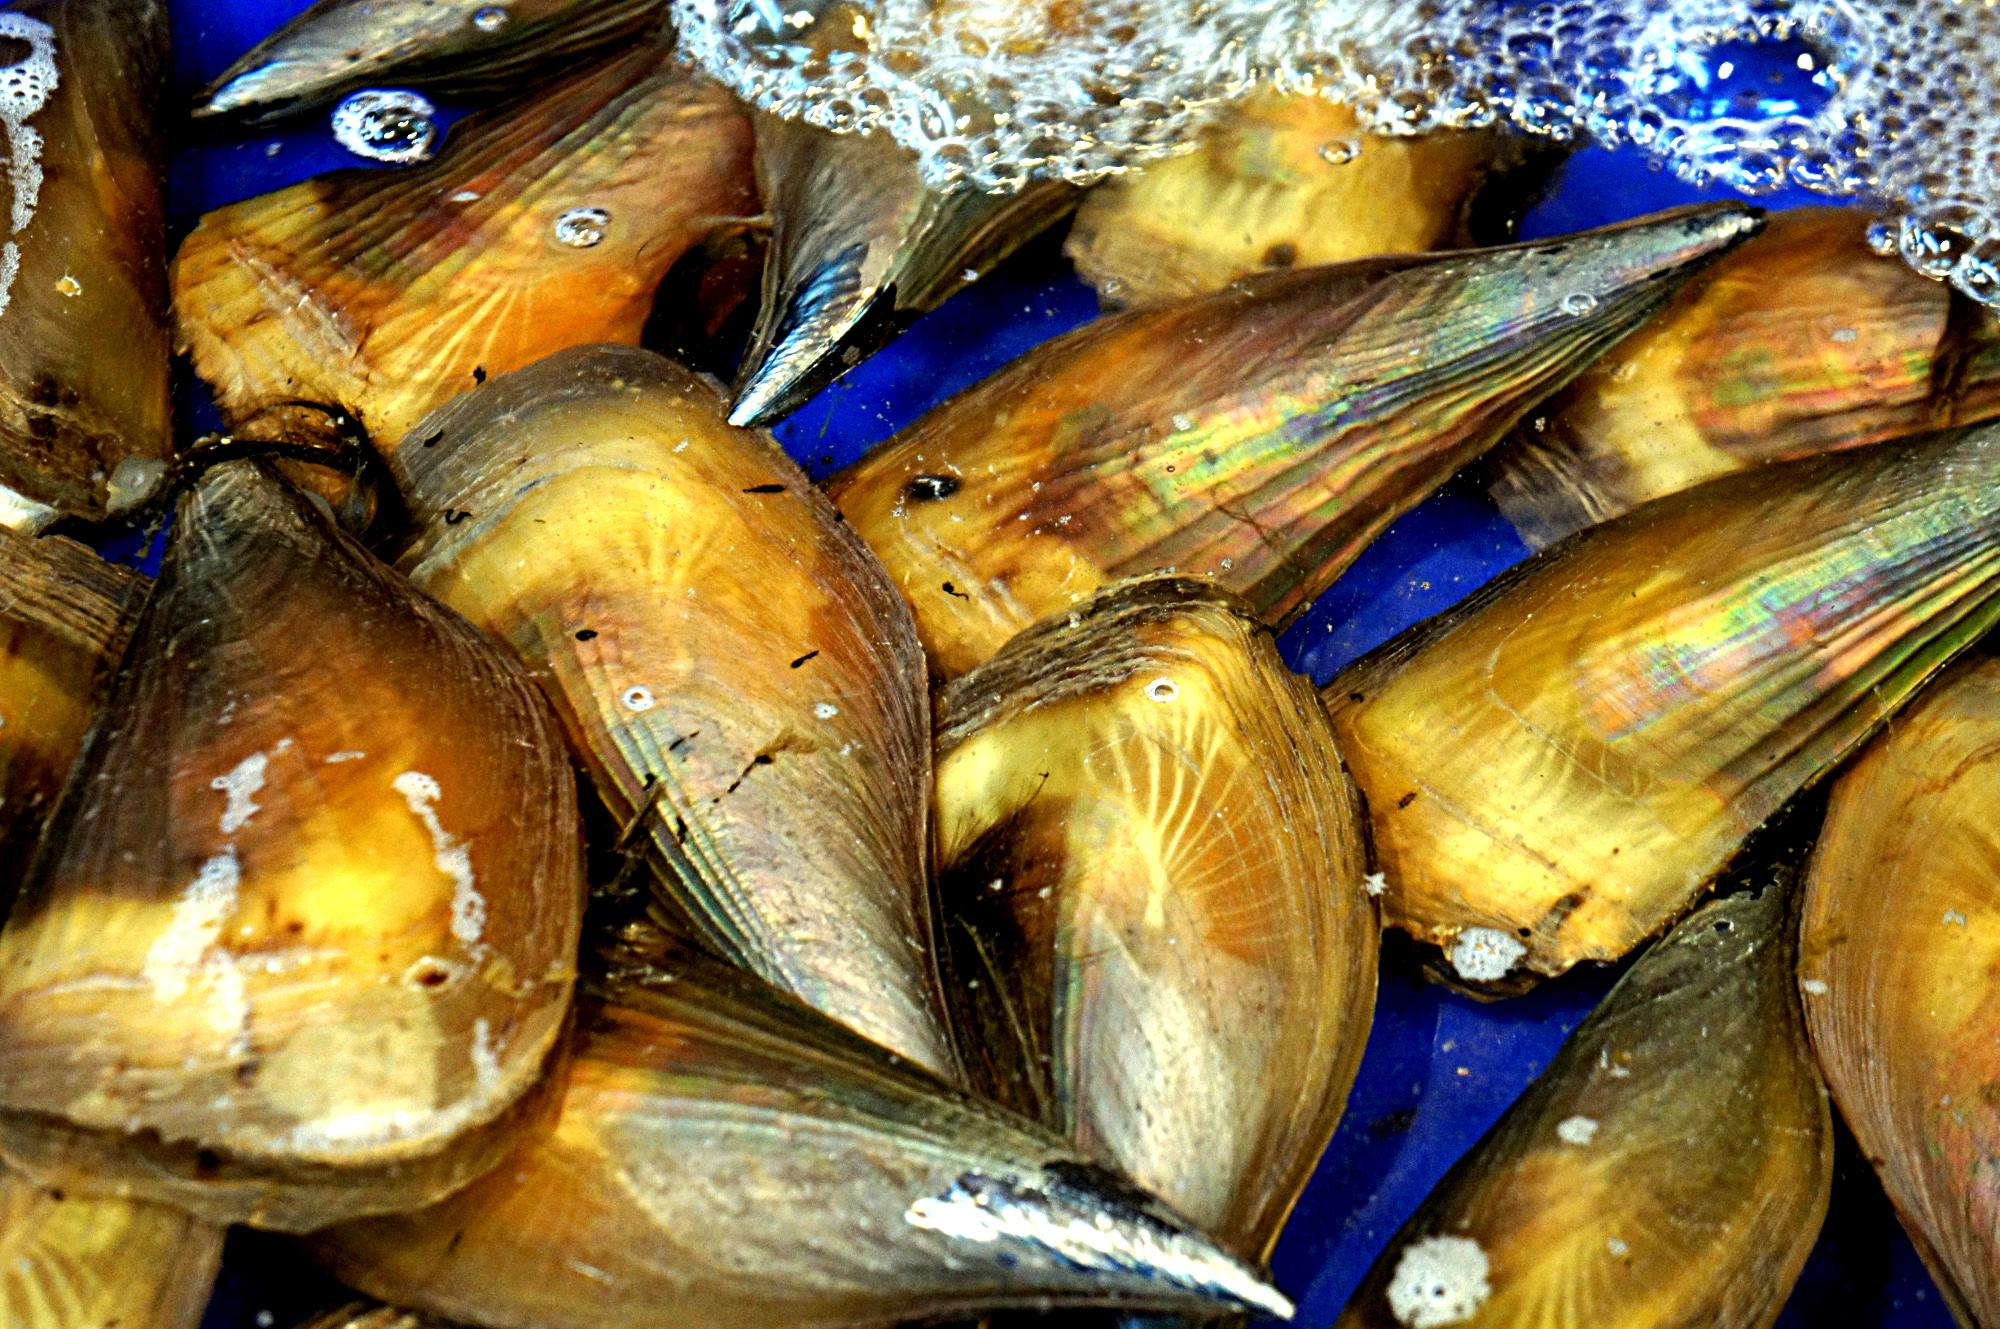 Minister Walsh announced EOI process for new Bay scallop fishery